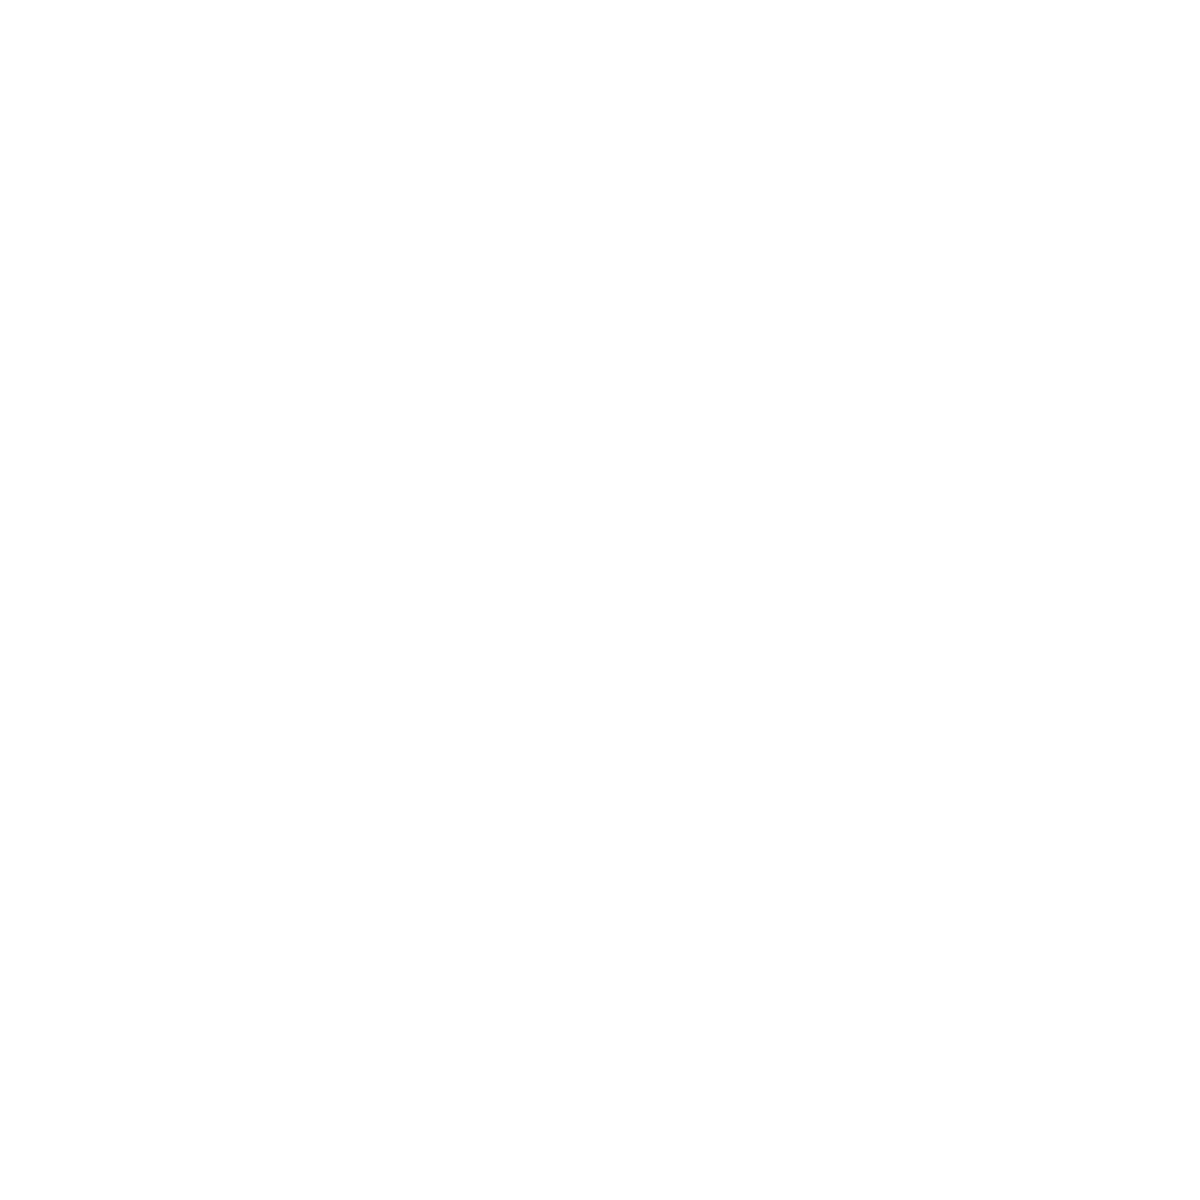 Pipe-Duct-Insulation